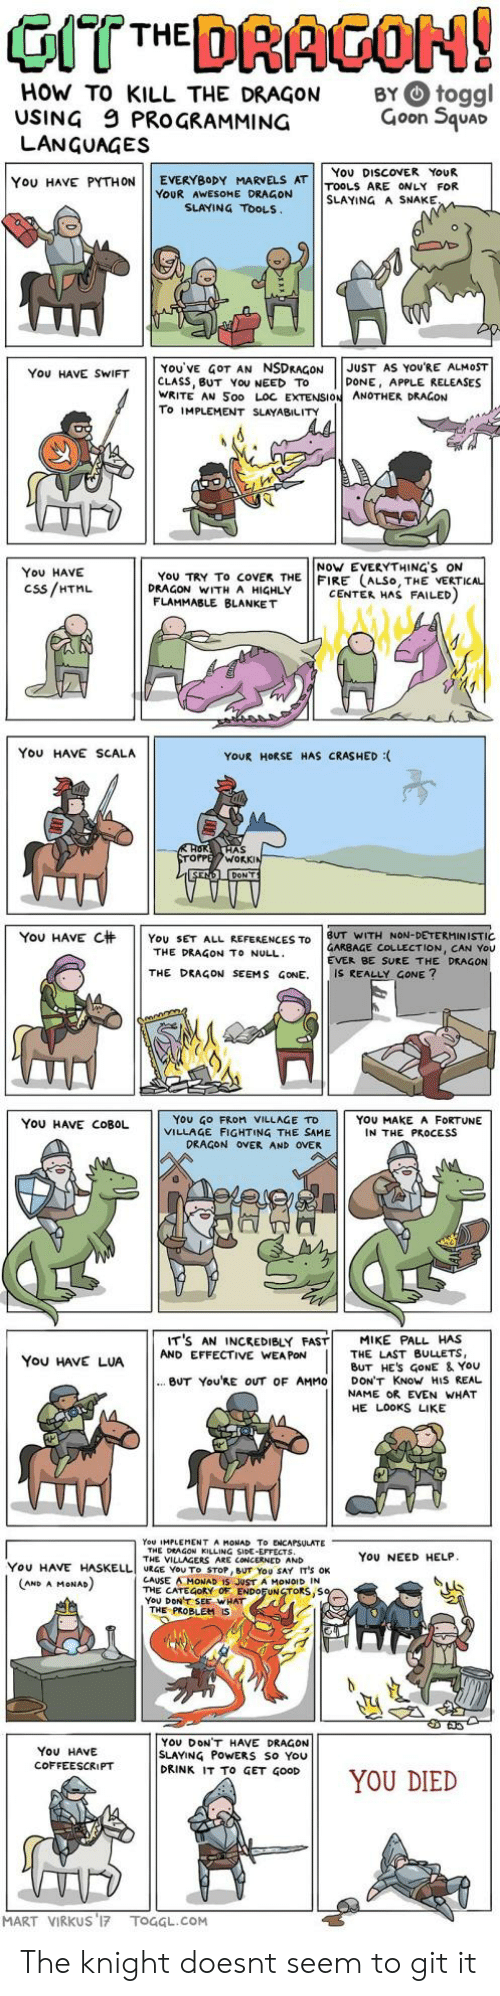 You Died: HOW TO KILL THE DRAGON  USING 9 PROGRAMMING  LANGUAGES  BY O toggl  Goon Squar  You DISCOVER YoUR  YOU HAVE PYTHON | | EVERYBODY MARVELS AT | |TOOLS ARE ONLY FOR  YOUR AWESOME DRAGON  SLAYING A SNAKE  SLAYING TOOLS  YOU'VE GOT AN NSDRAGONJUST AS YOURE ALMOST  CLASS, BUT YoU NEED TO  WRITE AN Soo LOC EXTENSION ANOTHER DRAGON  To IMPLEMENT SLAYABILITY  You HAVE SWIFT  DONE, APPLE RELEASES  NoW EVERYTHING'S ON  You HAVE  Css/HTML  YoU TRY To coVEK THE FIRE (ALSo, THE VERTI  DRAGON WITH A HIGHLY  CENTER HAS FAILED  FLAMMABLE BLANKET  You HAVE SCALA  YOUR HORSE HAS CRASHED :  AS  WORK  YOU HAVE C杄 | | YOU SET ALL REFERENCES TO | BUT WITH NON-DETERMINISTIC  GARBAGE COLLECTION, CAN You  EVER BE SURE THE DRAGON  THE DRAGON TO NULL  THE DRAGON SEEMS GONE. IS REALLY GONE?  YoU GO FRoM VILLAGE TD  VILLAGE FIGHTING THE SAME  YOU HAVE COBOL  YOU MAKE A FORTUNE  IN THE PROCESS  DRAGON OVER AND OVER  IT'S AN INCREDIBLY FAST! MIKE PALL HAS  You HAVE LUAAND EFFECTIVE WANE ES  THE LAST BULLETS,  BUT HES GoNE & YoU  BUT You'RE OUT OF AMMO DON'T KNoW HIS REAL  NAME OR EVEN WHAT  HE LOOKS LIKE  You IMPLEMENT A MONAD To ENCAPSULATE  THE DEAGON KILLING SIDE-EFFECTS  THE VILLAGERS ARE CONCERNED AND  YoU NEED HELP  YOU HAVE HASELLI URGE YOU To STOP, BUT YOU SAY IT'S OK  CAUSE AMONAD IS JUST A MONOID IN  THE CATEGORY OF ENDOFUNSTORS,S  YoU DONT SEE WHAT  AND A MoNAD  THE PROBLEM  YOU DONT HAVE DRAGON  SLAYING PoWERS So You  DRINK IT To GET GOOD  ON11 YOU DIED  You HAVE  COFFEESCRIPT  MART VIRKUS 17 TOGGL.COM The knight doesnt seem to git it